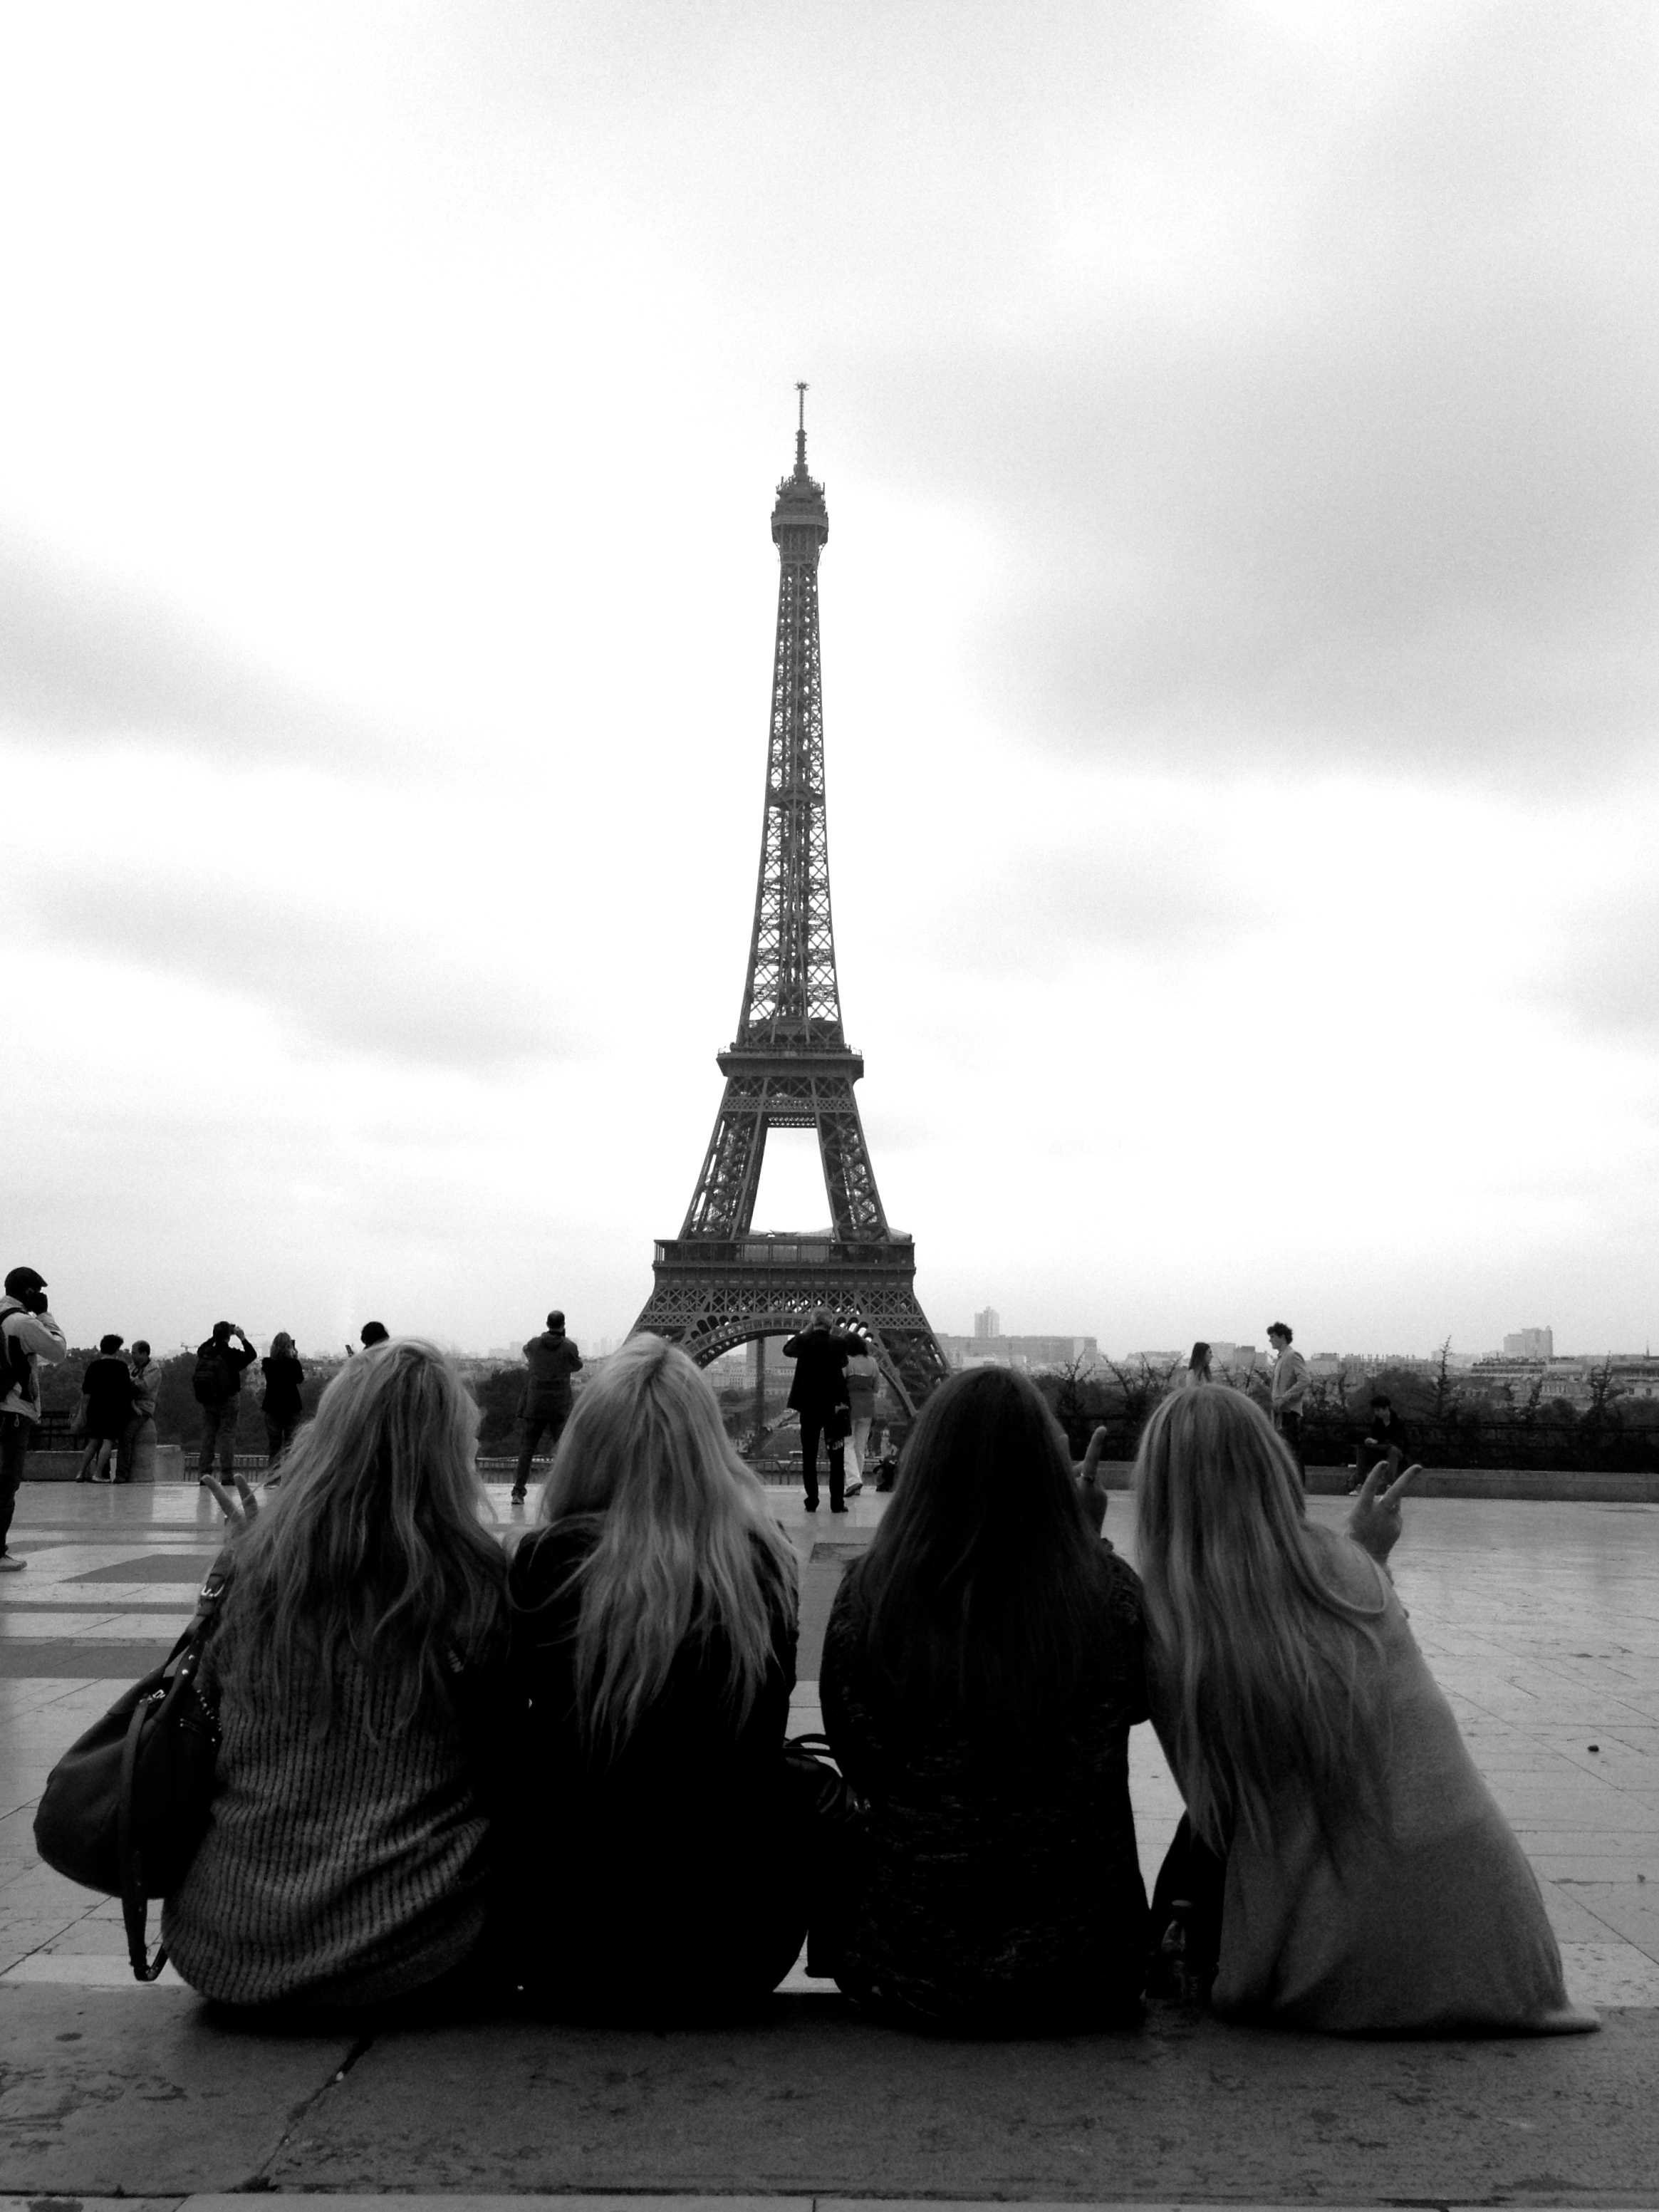 La Eiffel Tower Picture